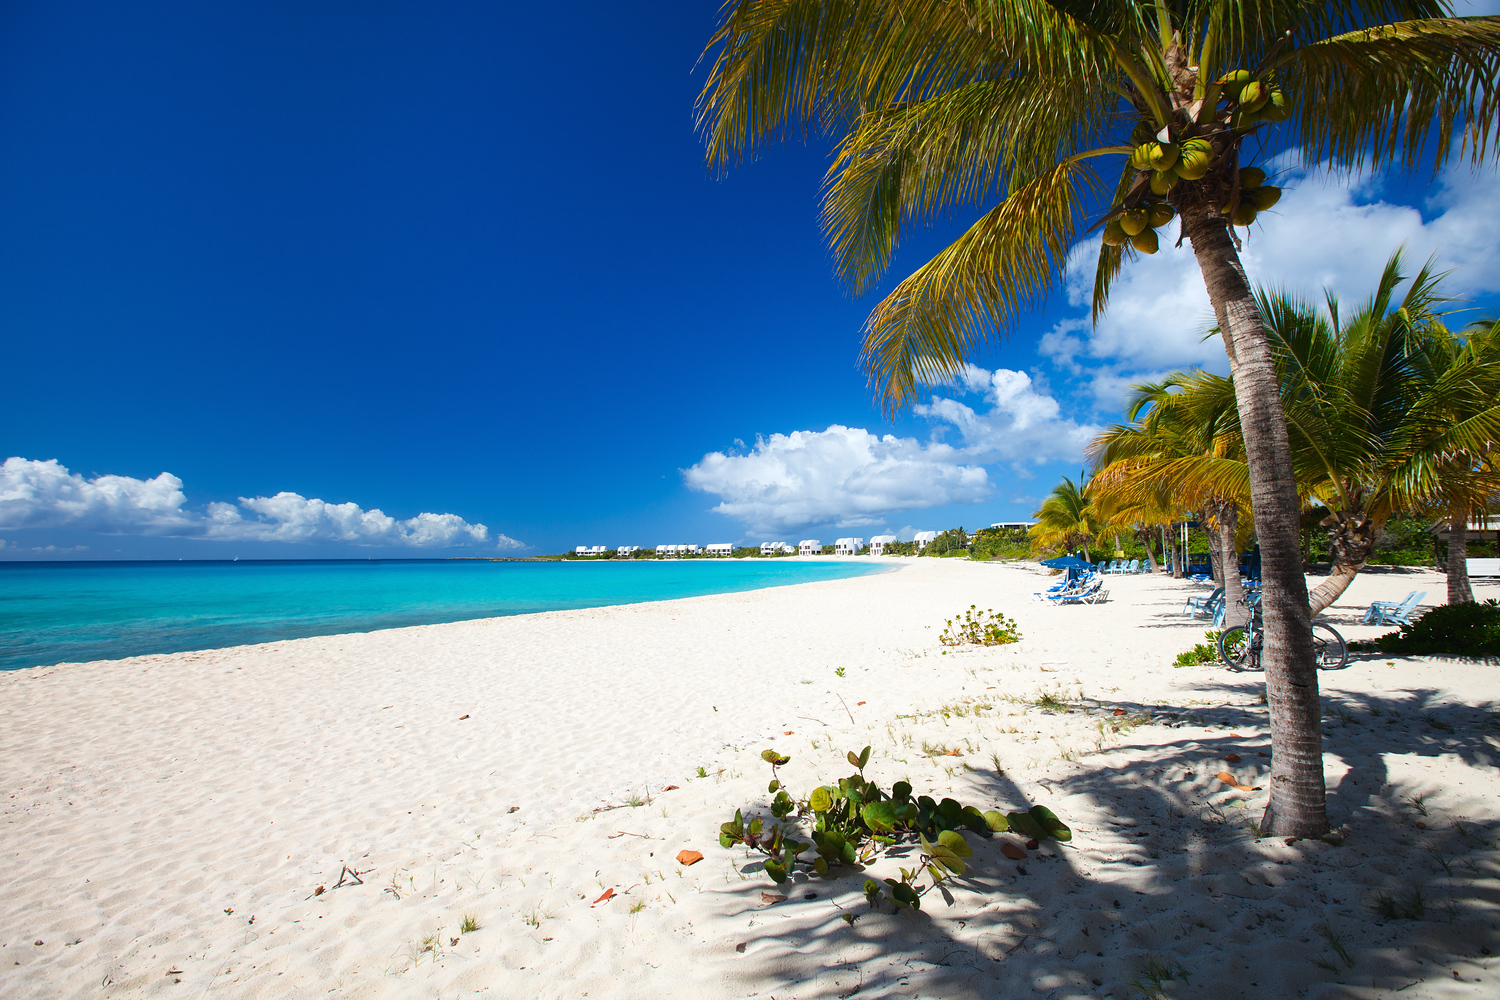 One of the beach beaches in Anguilla